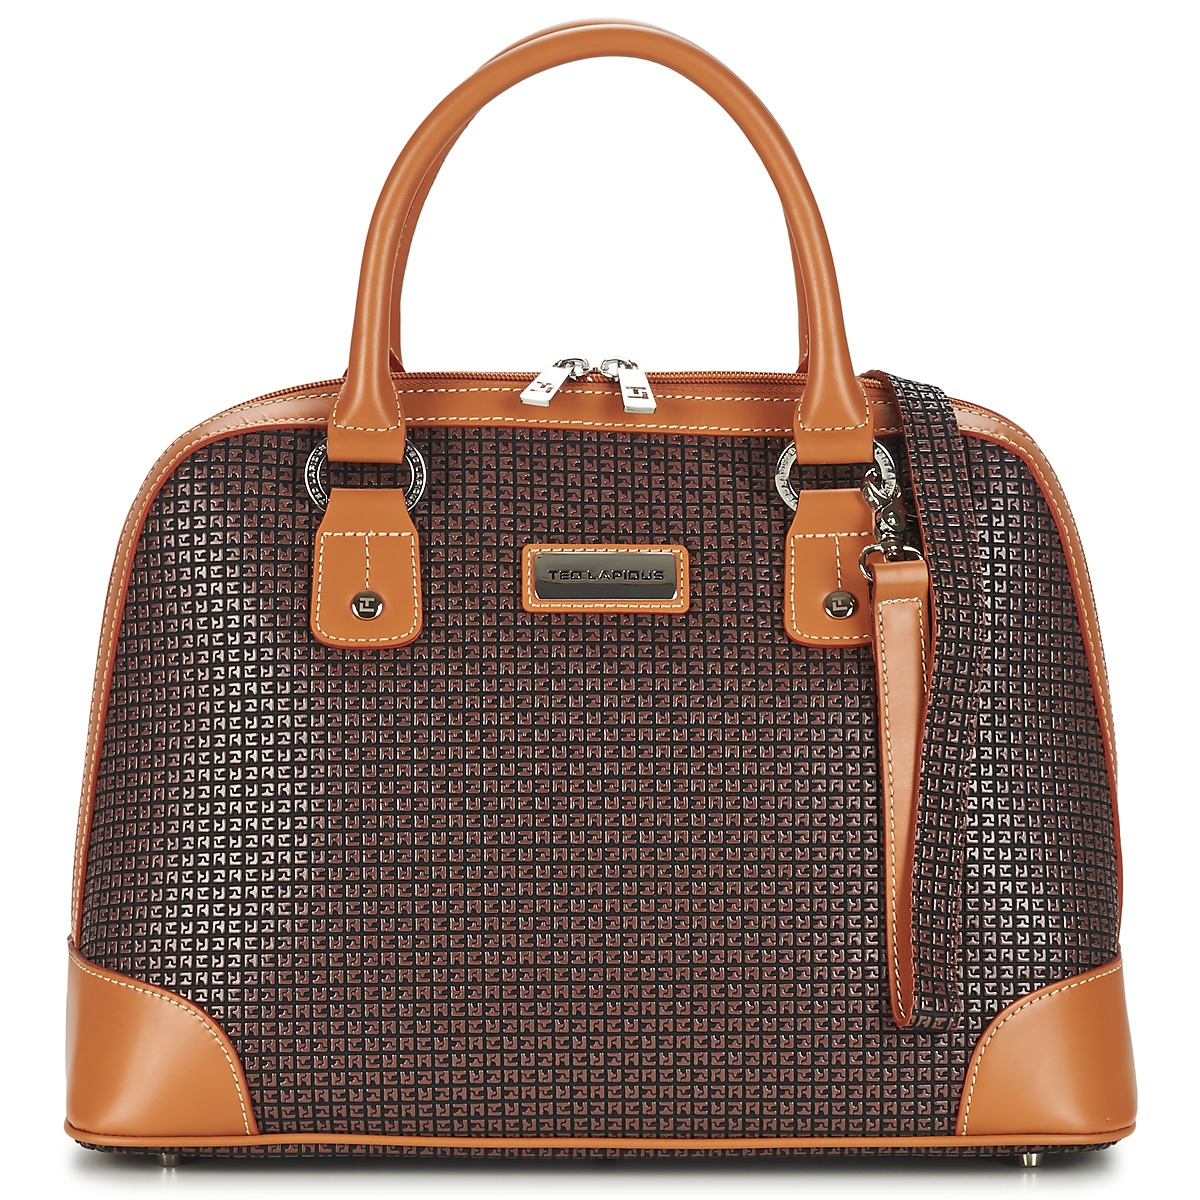 Ted Lapidus Fidelio Brown Cognac Free Delivery With Spartoo Net Bags Handbags Women Usd 185 00